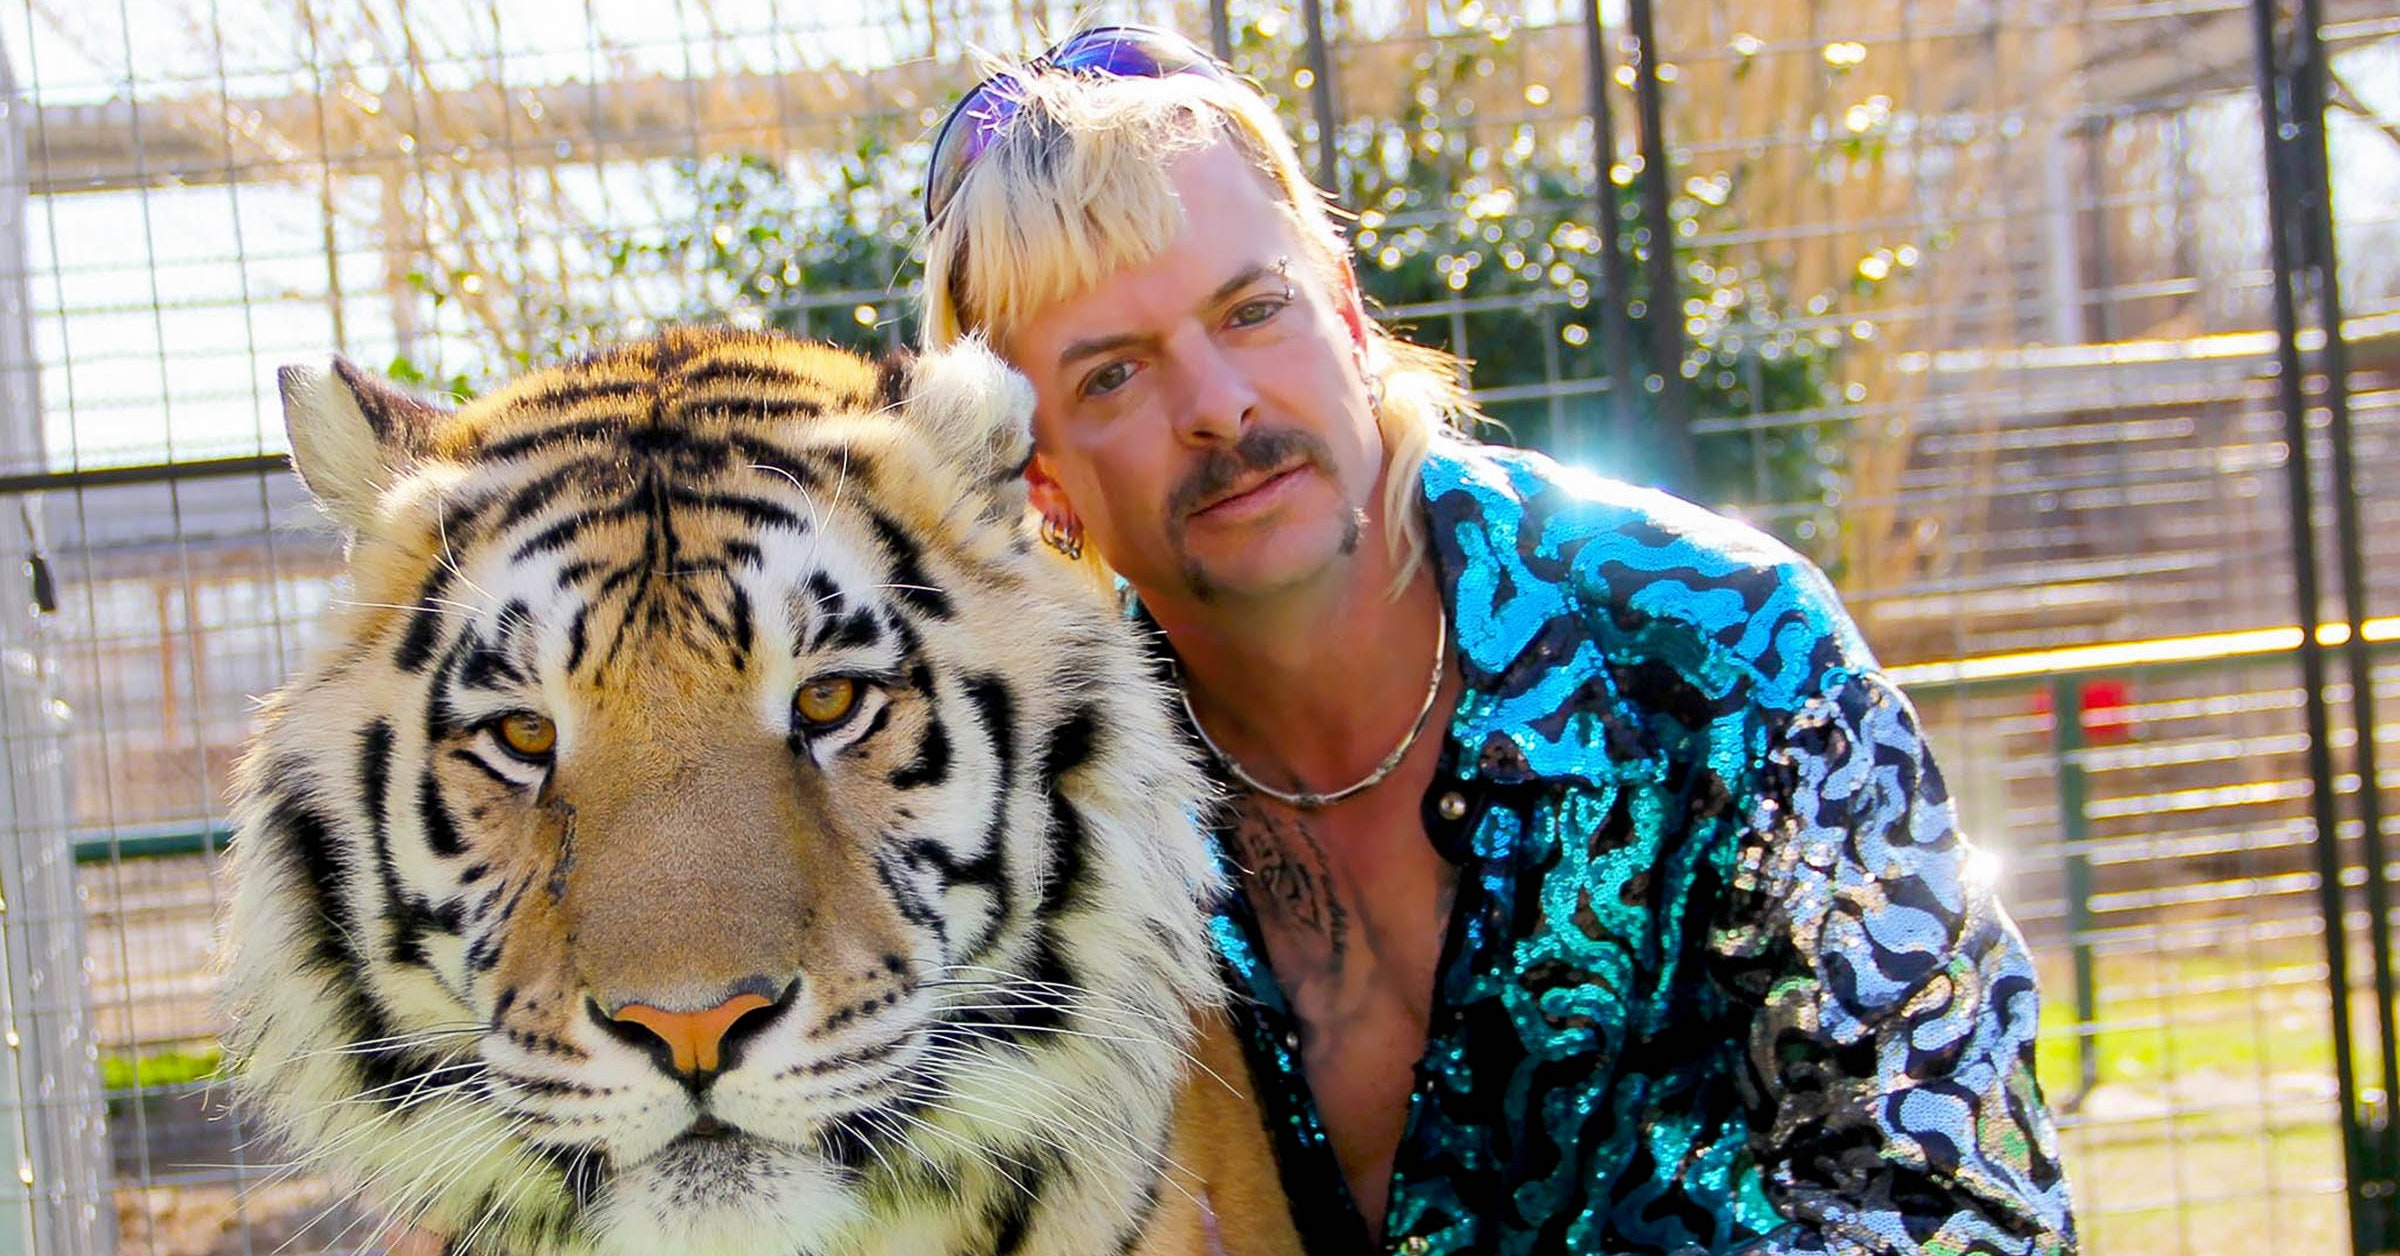 Tiger King: Five Things You Didn't Know About Netflix's Insane Hit